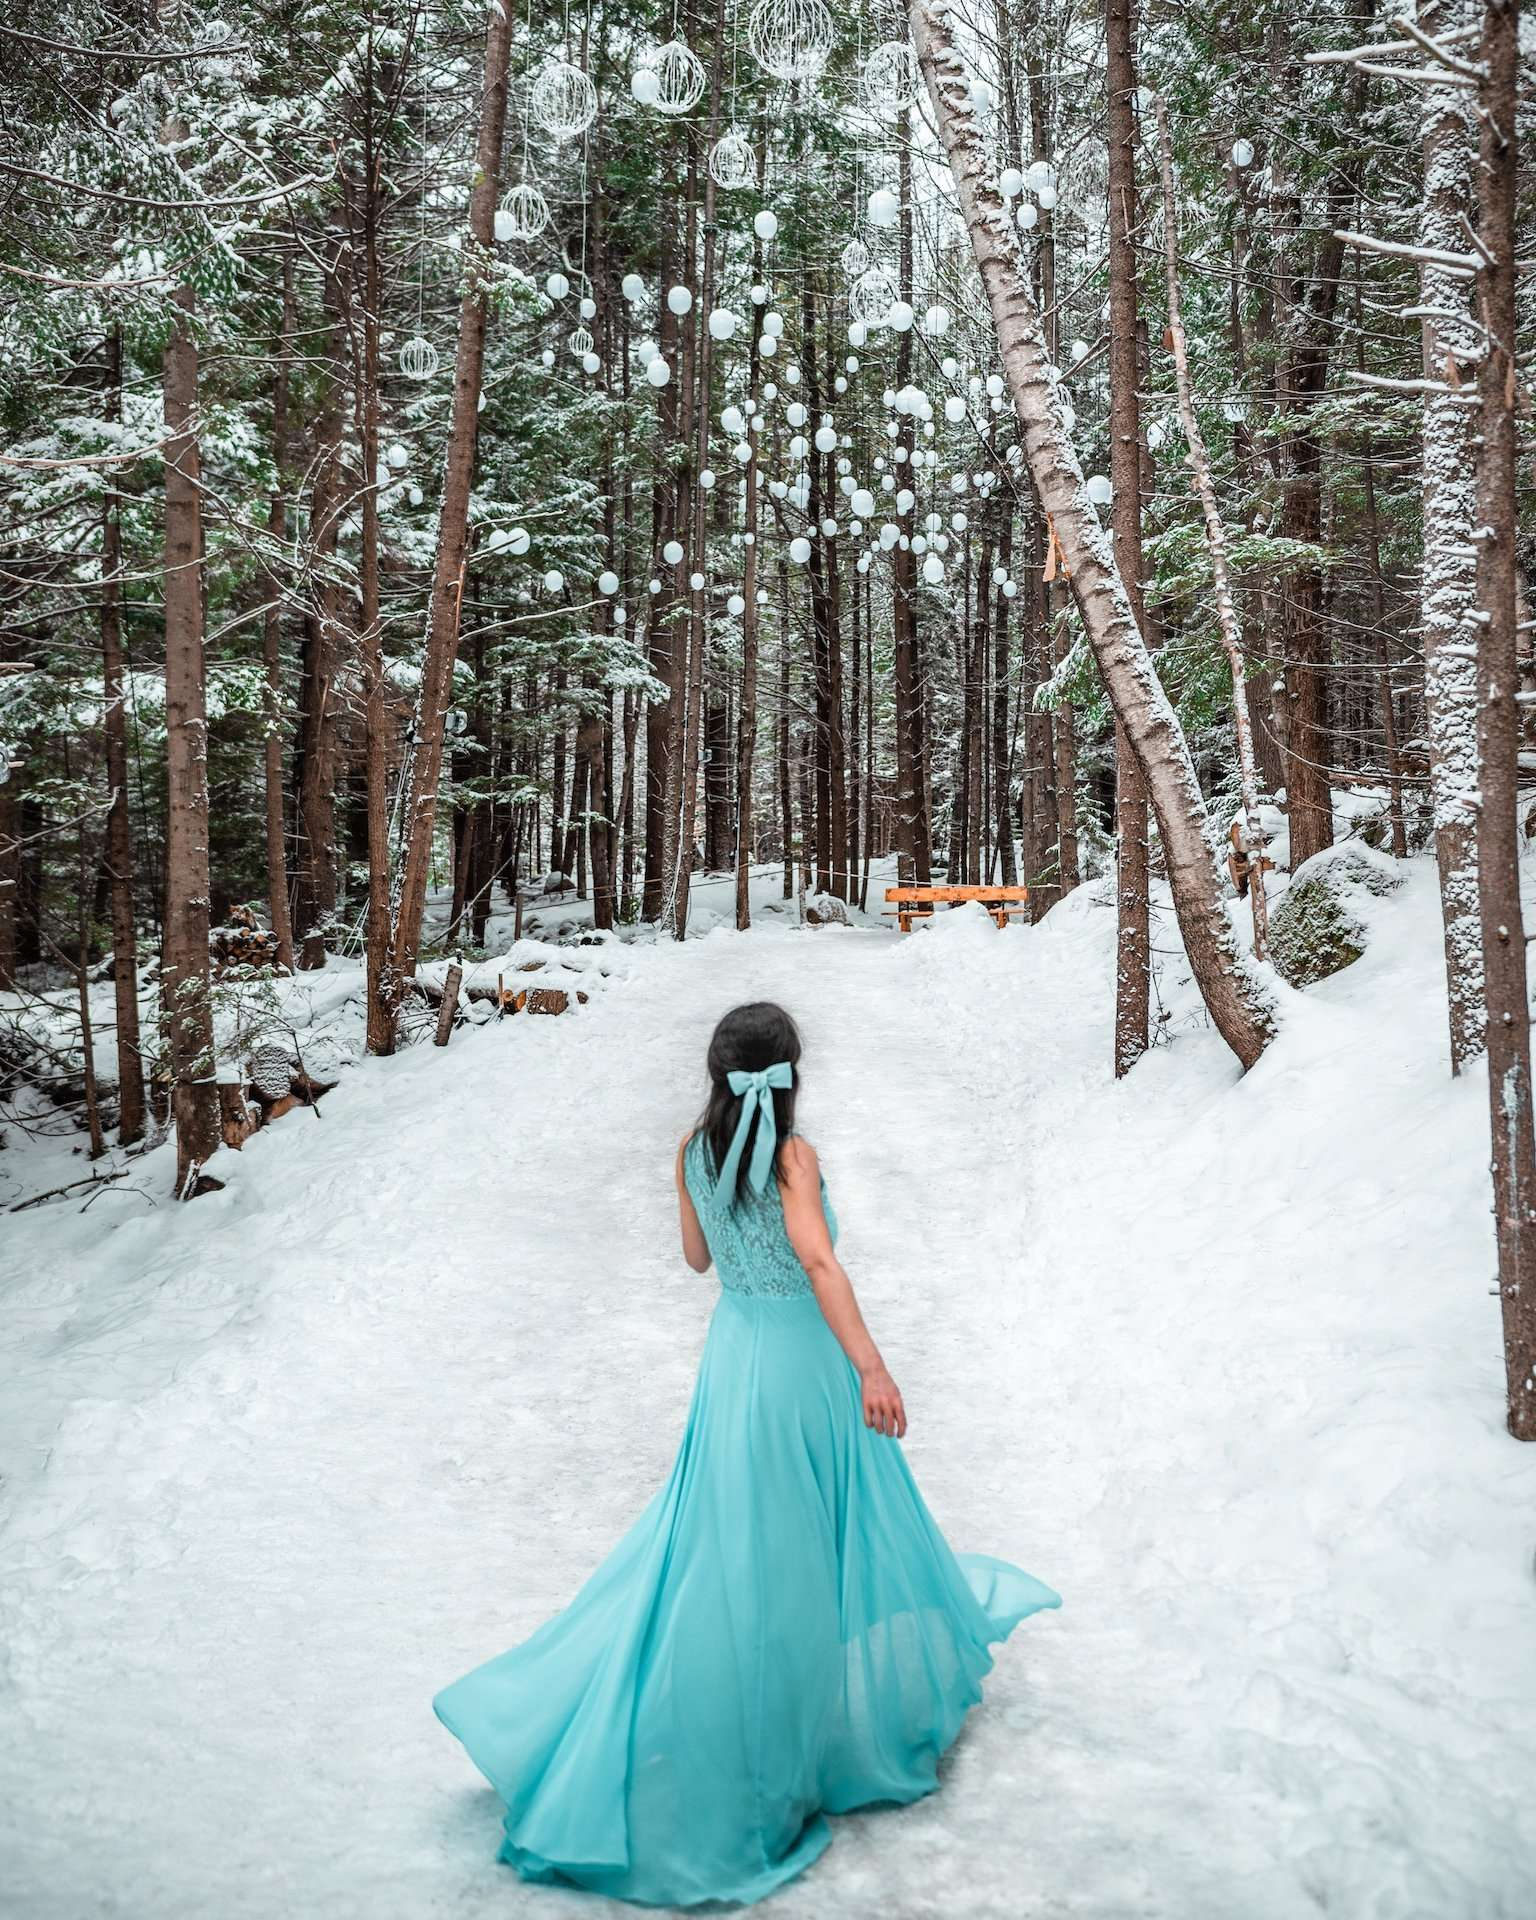 enchanted forest at Ice Castles New Hampshire